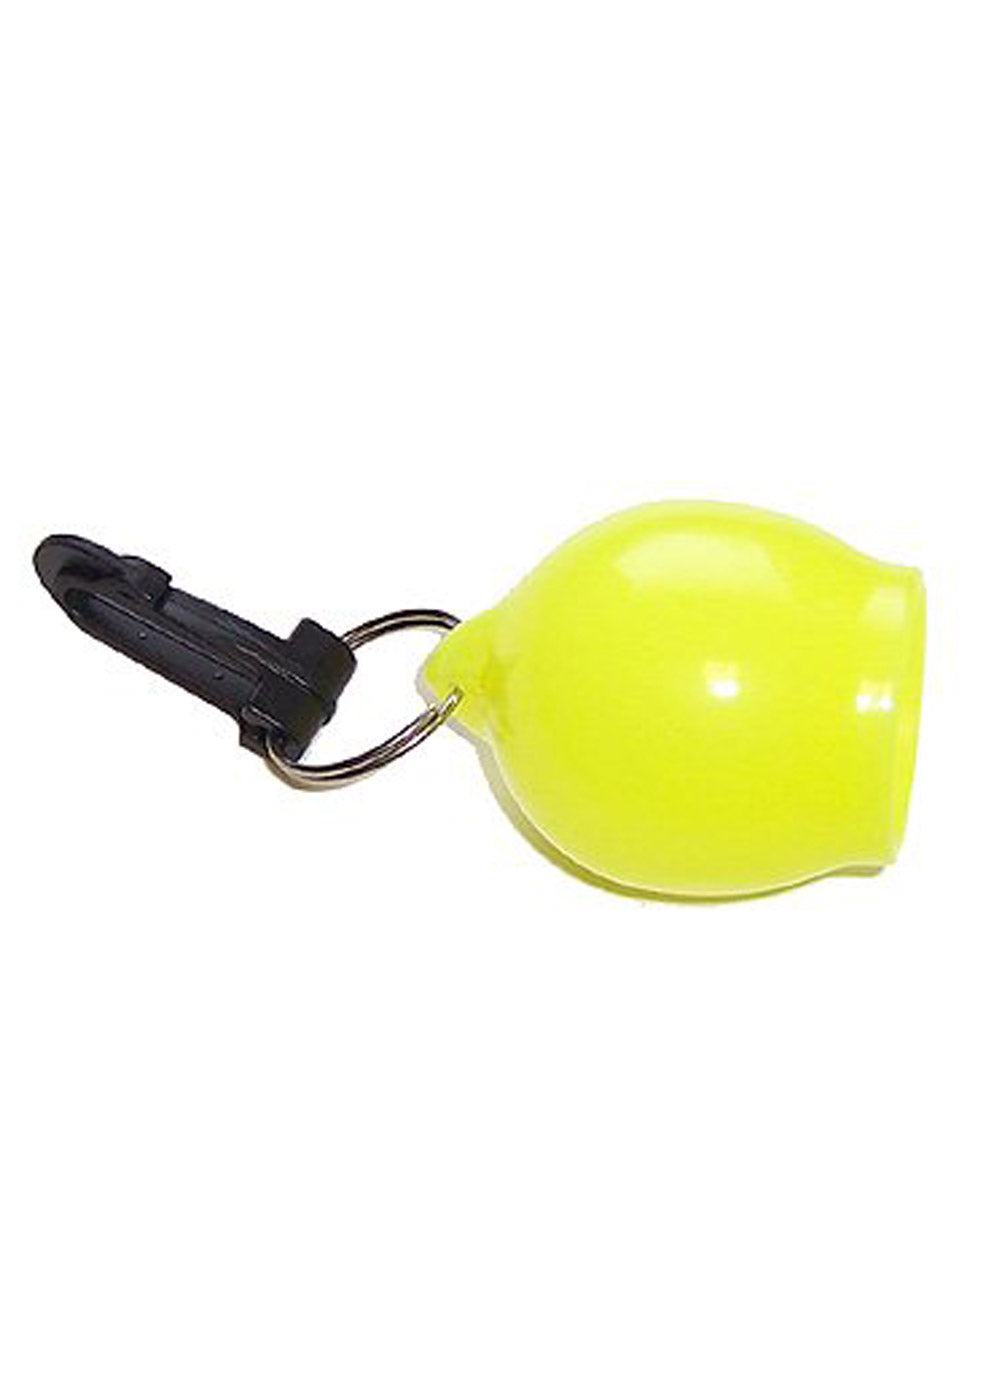 Problue Reg Mouthpiece Holder Yellow (Rounded Ball)